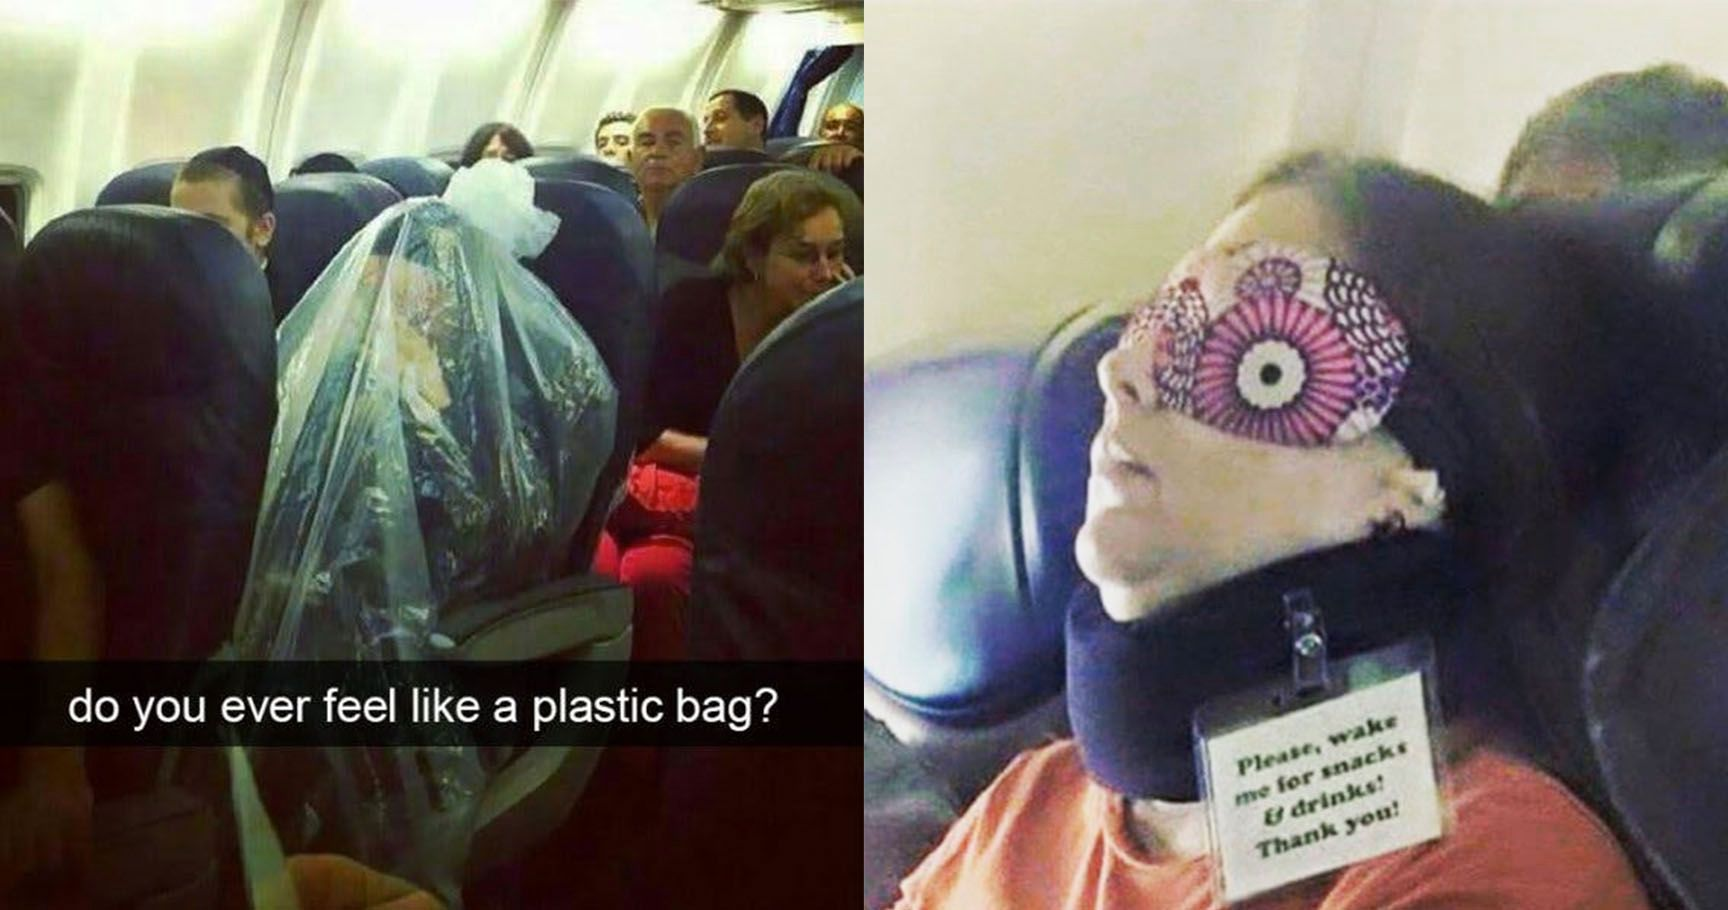 15 Genius Flight Passengers Who Are Winning At LIFE